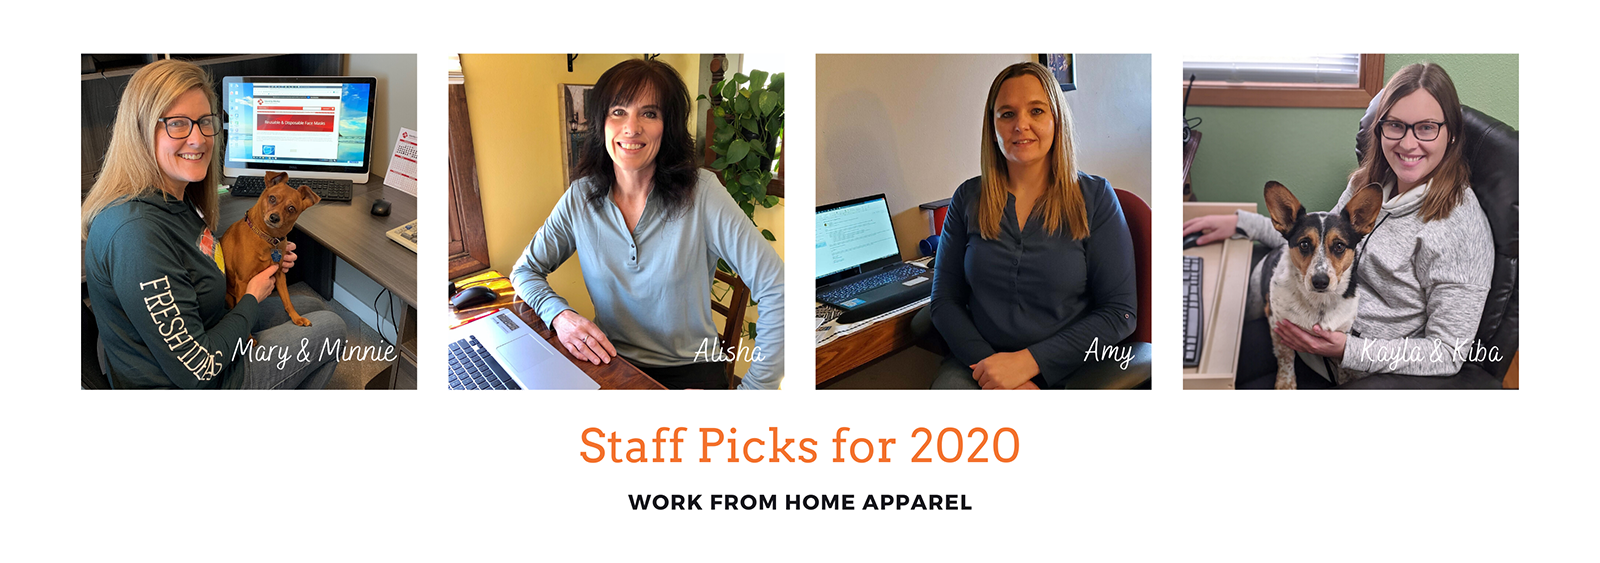 Staff Picks for 2020 | Work From Home Apparel